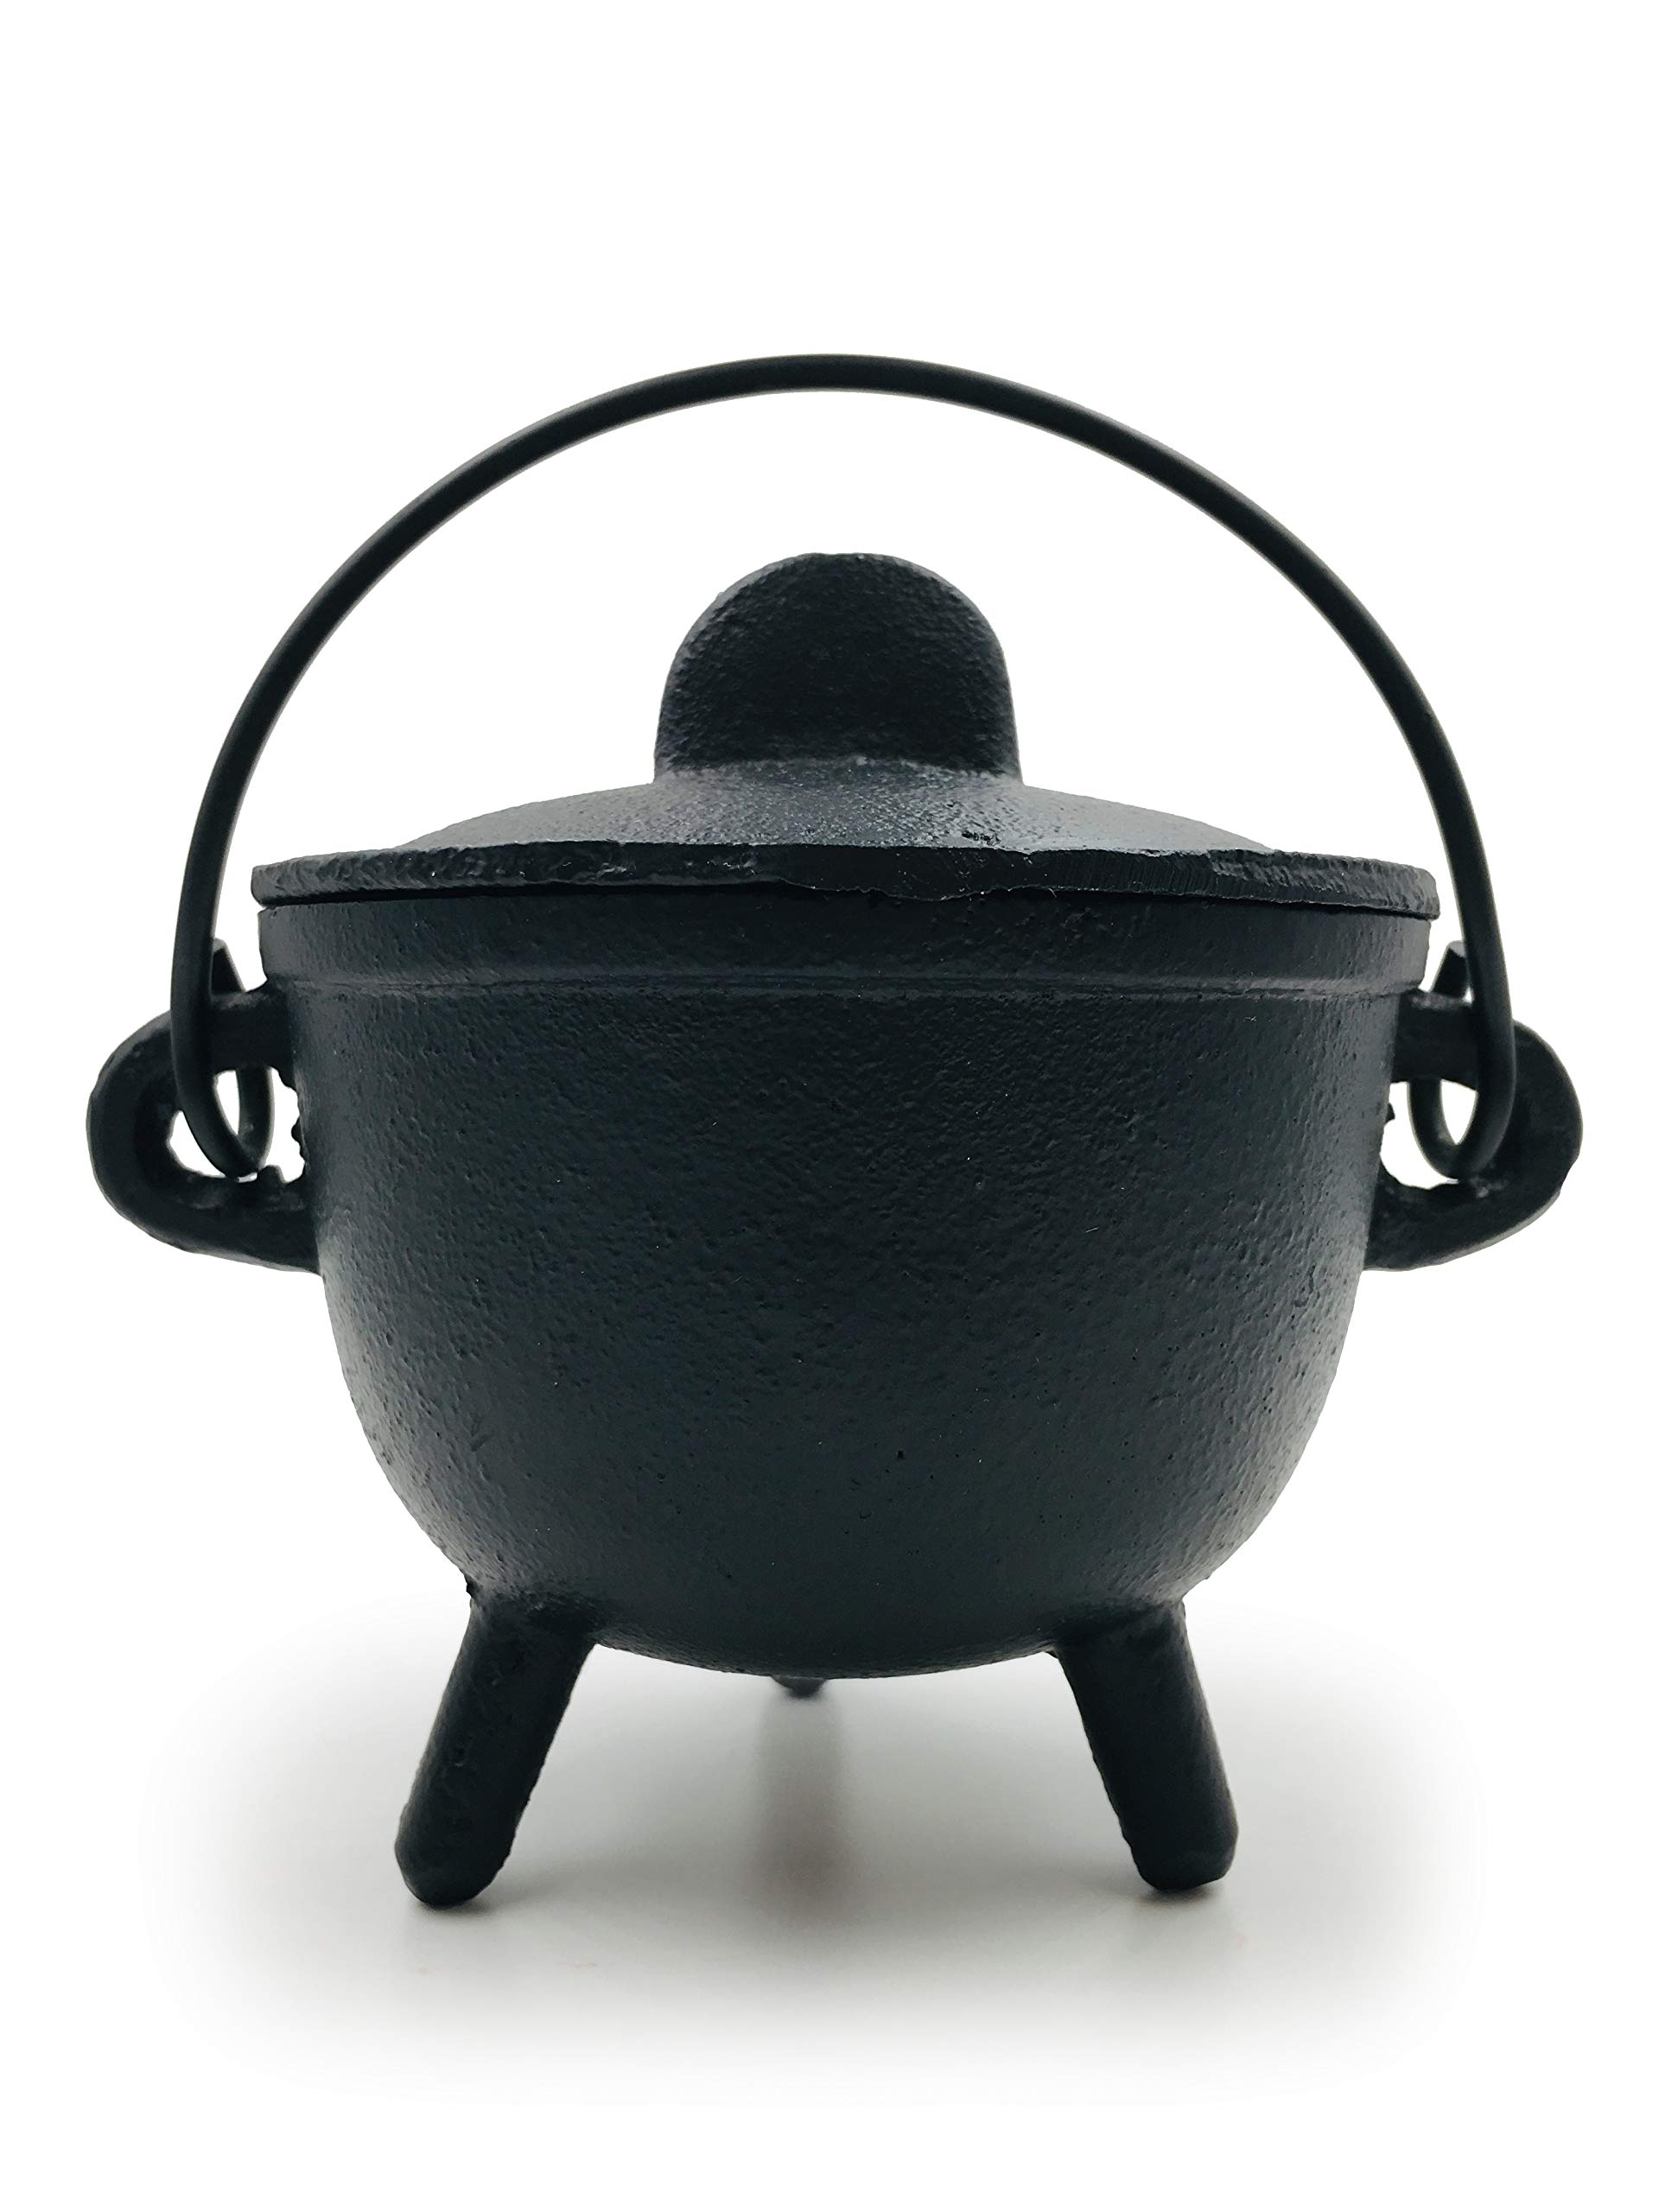 Alternative Imagination Cast Iron Cauldron with Lid and Handles. Perfect for Incense, Rituals, Home Decor, and More - 4.25 Inches Diameter by Alternative Imagination